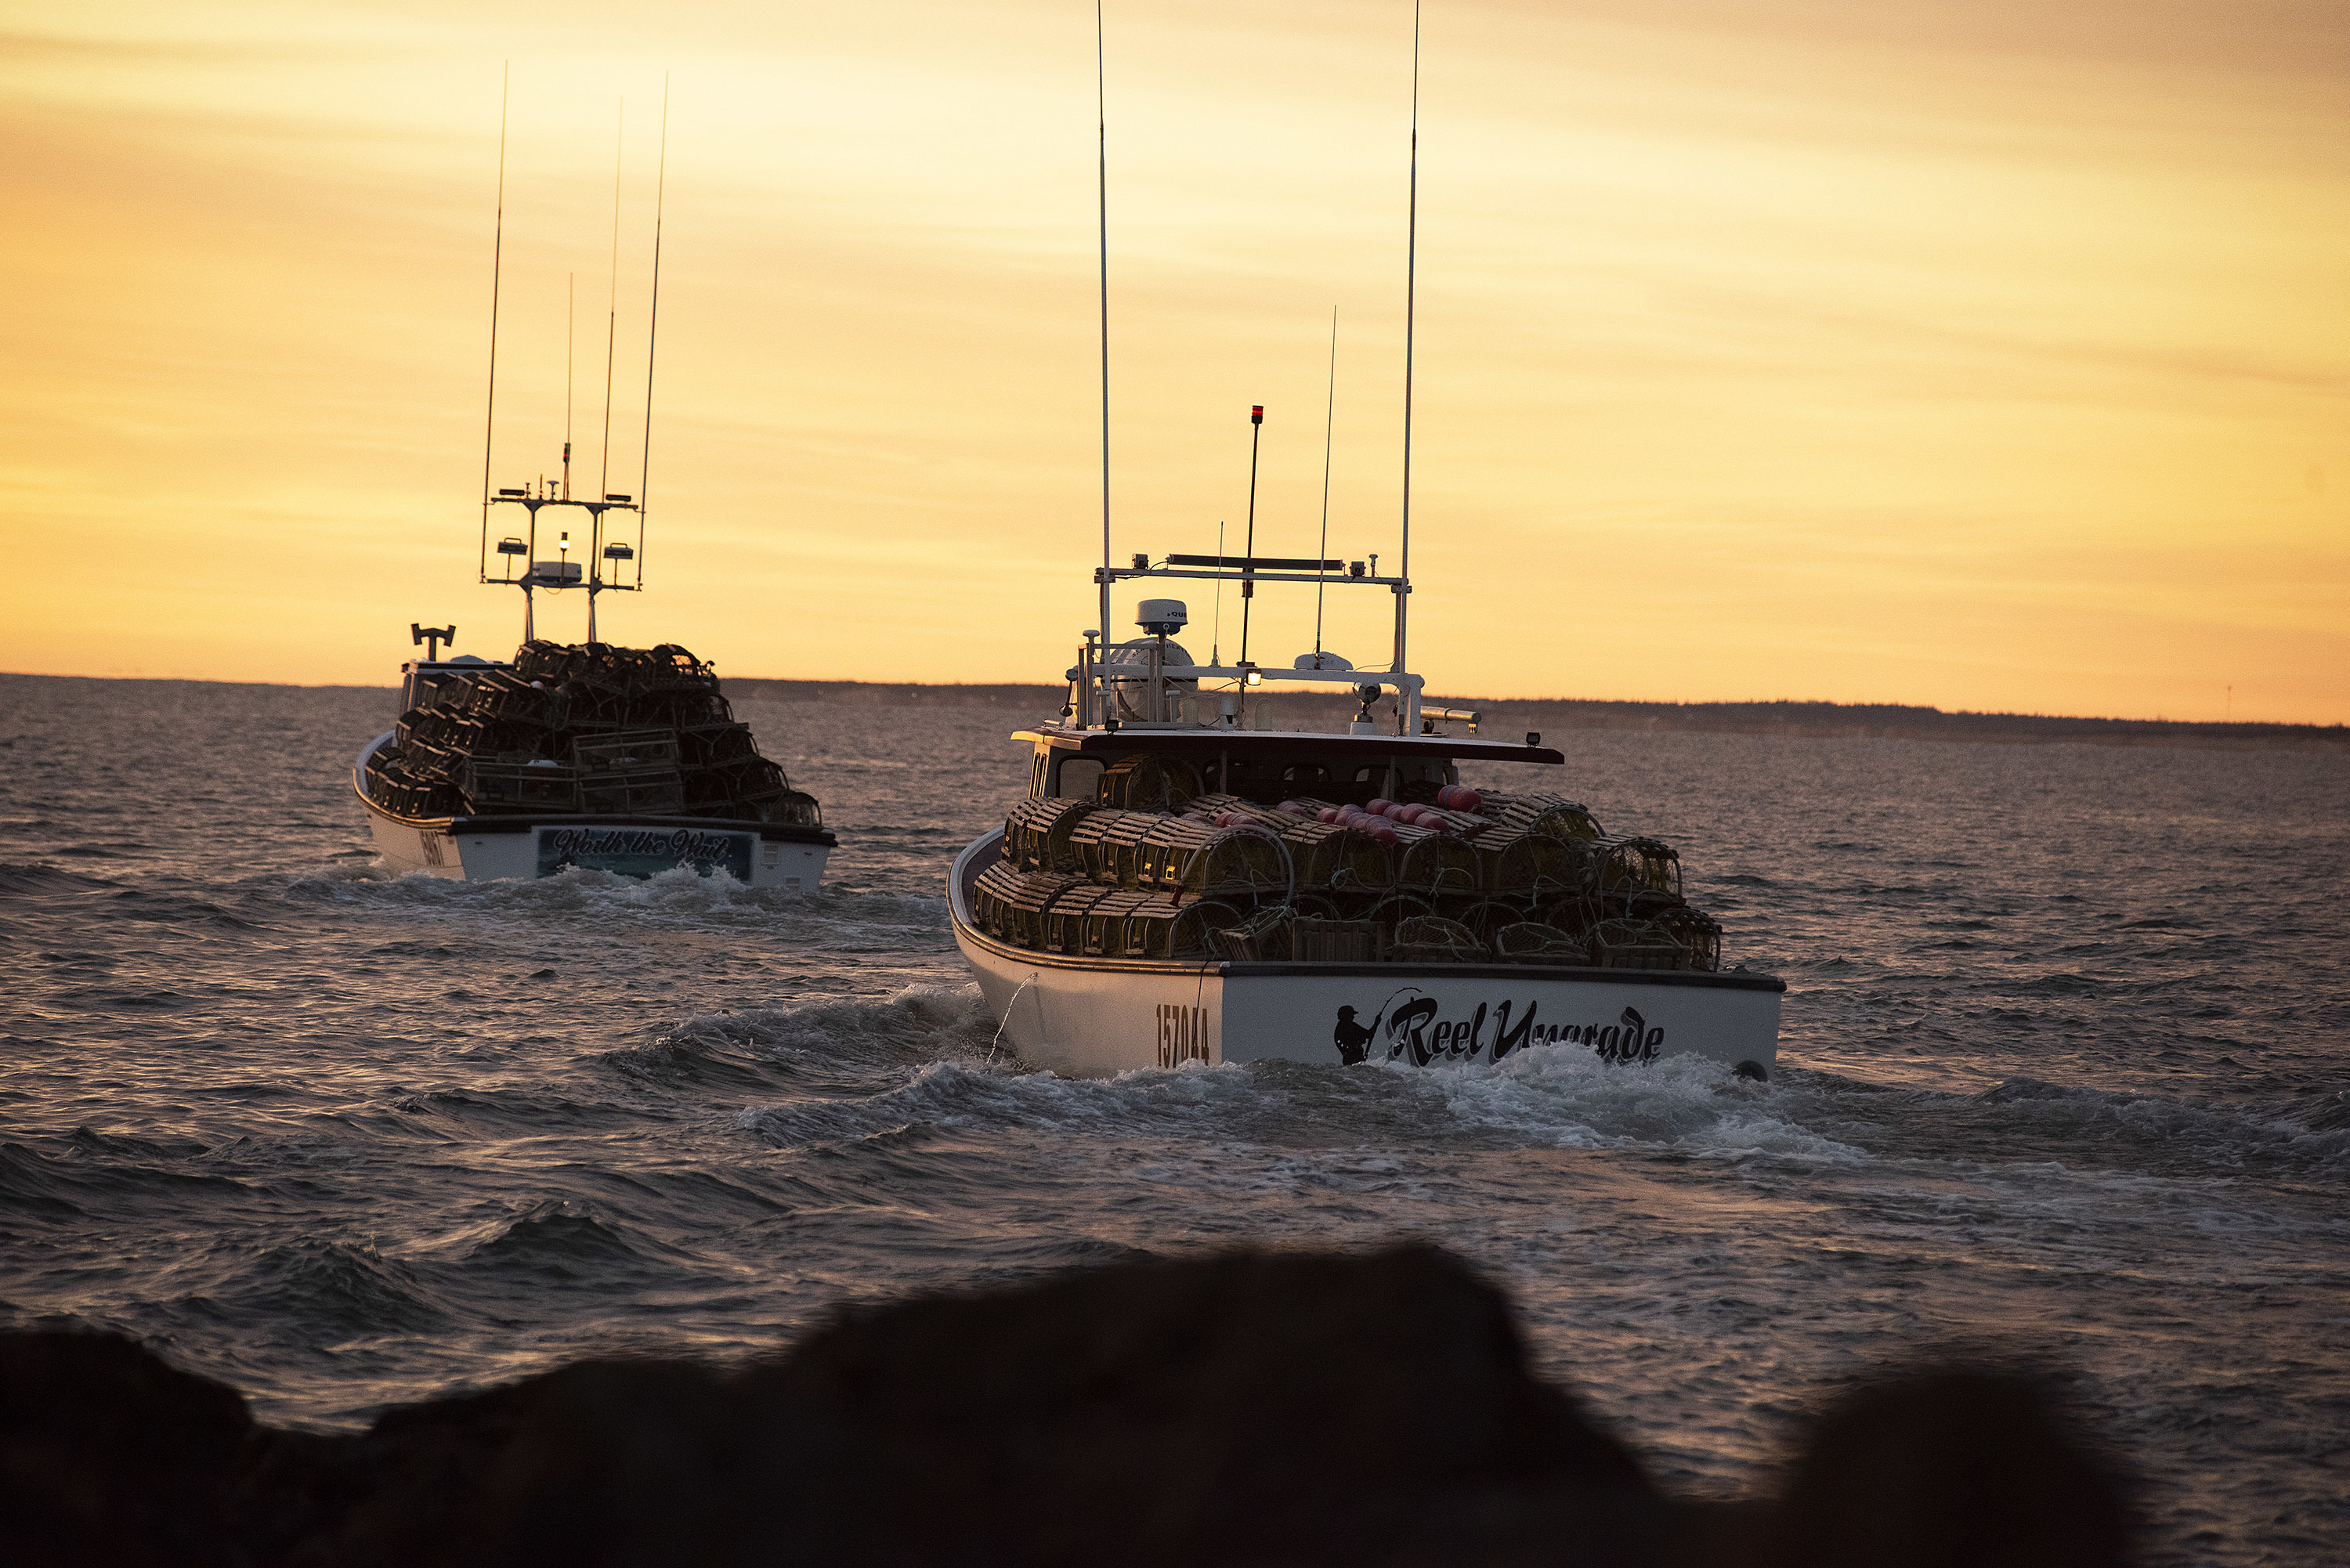 The sun is not yet above the horizon when the boats and their crews head to the staging area. (Brian McInnis)